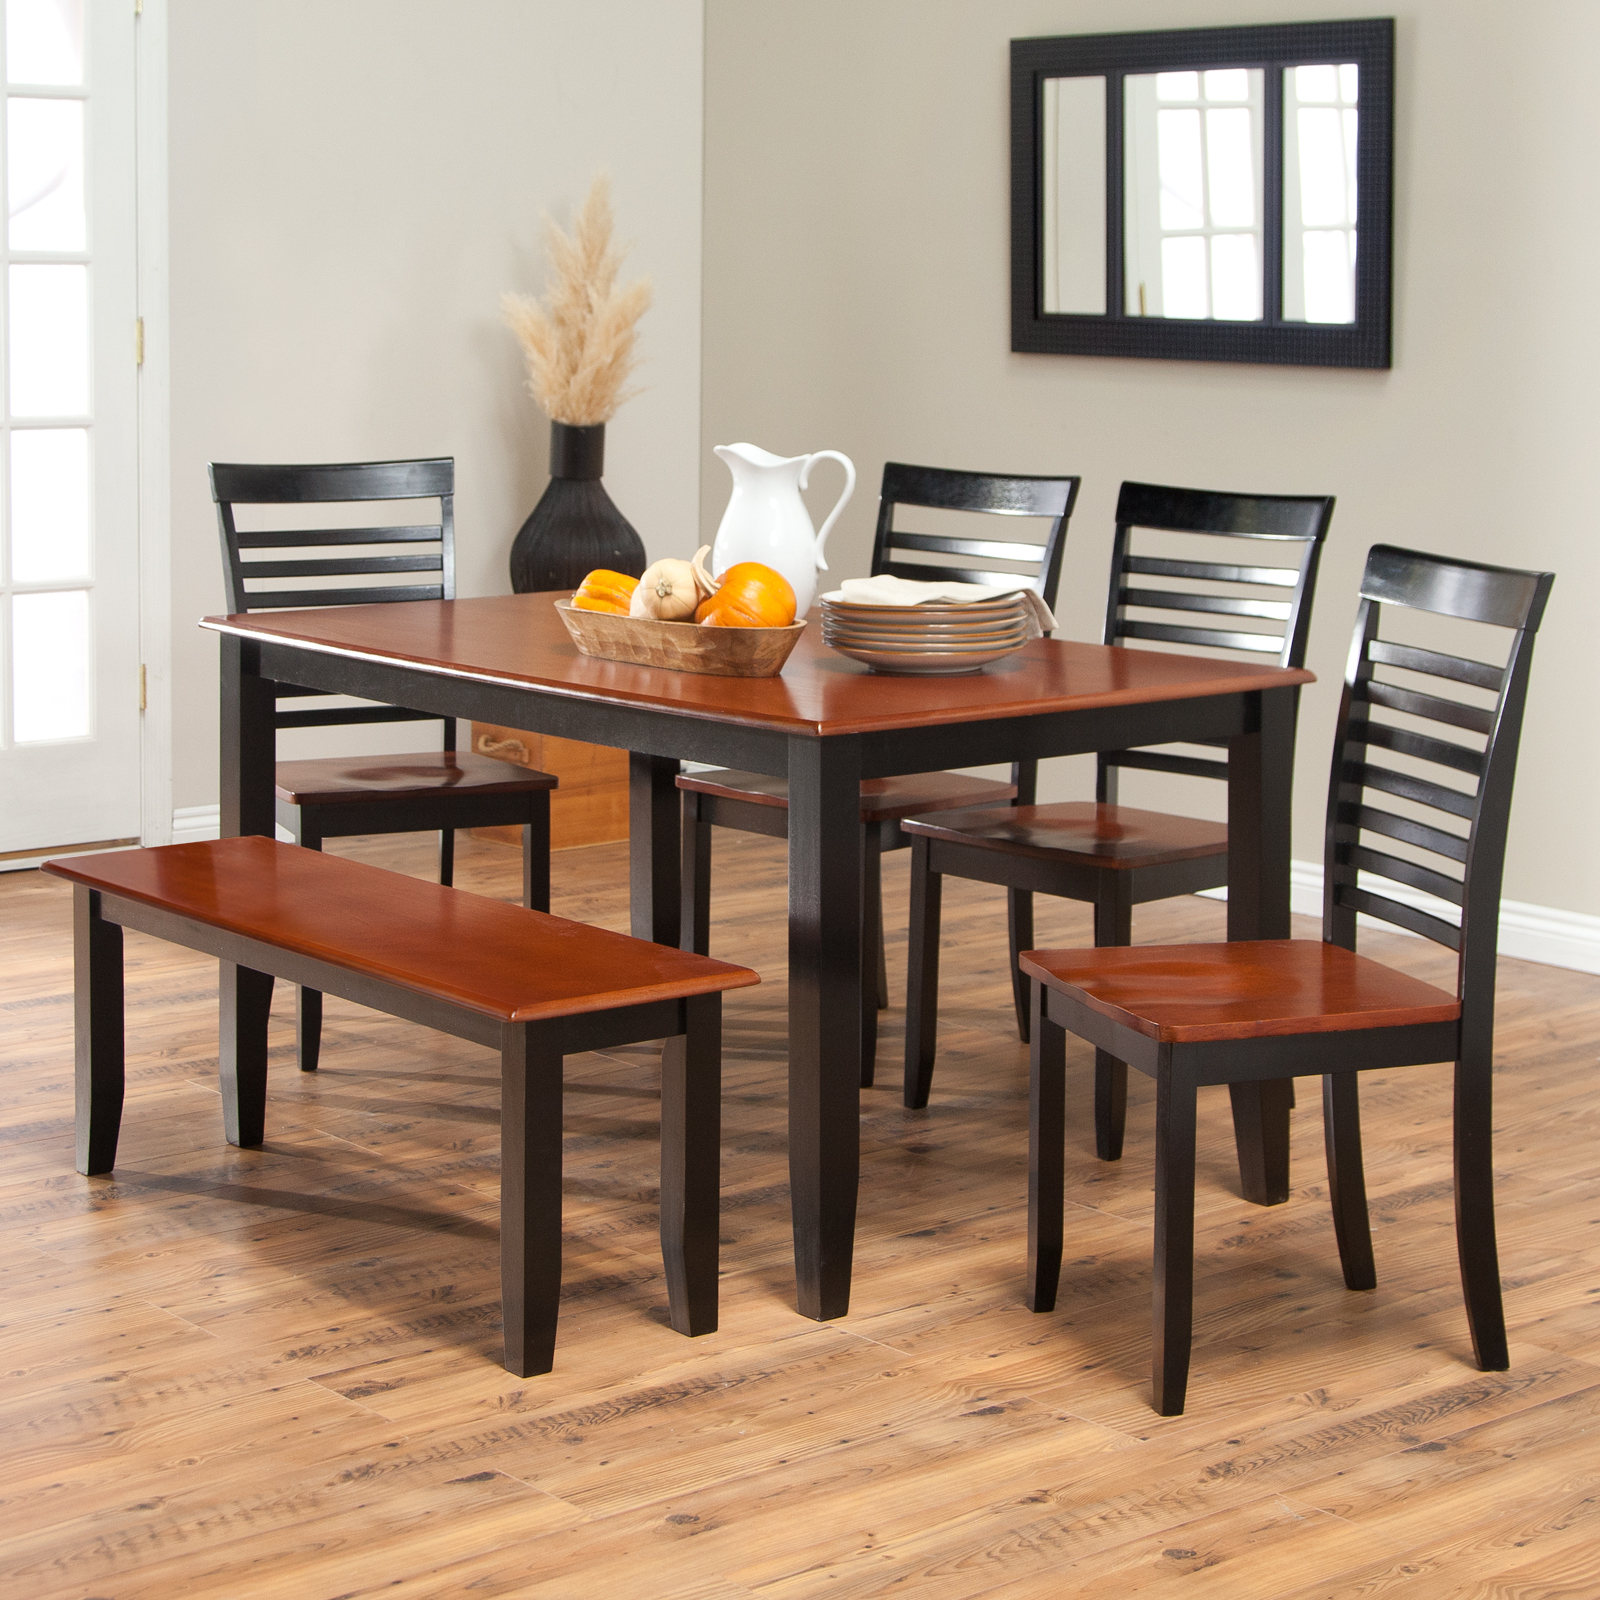 Boraam Bloomington Dining Table Set - Black/Cherry : kitchen table set with bench - pezcame.com